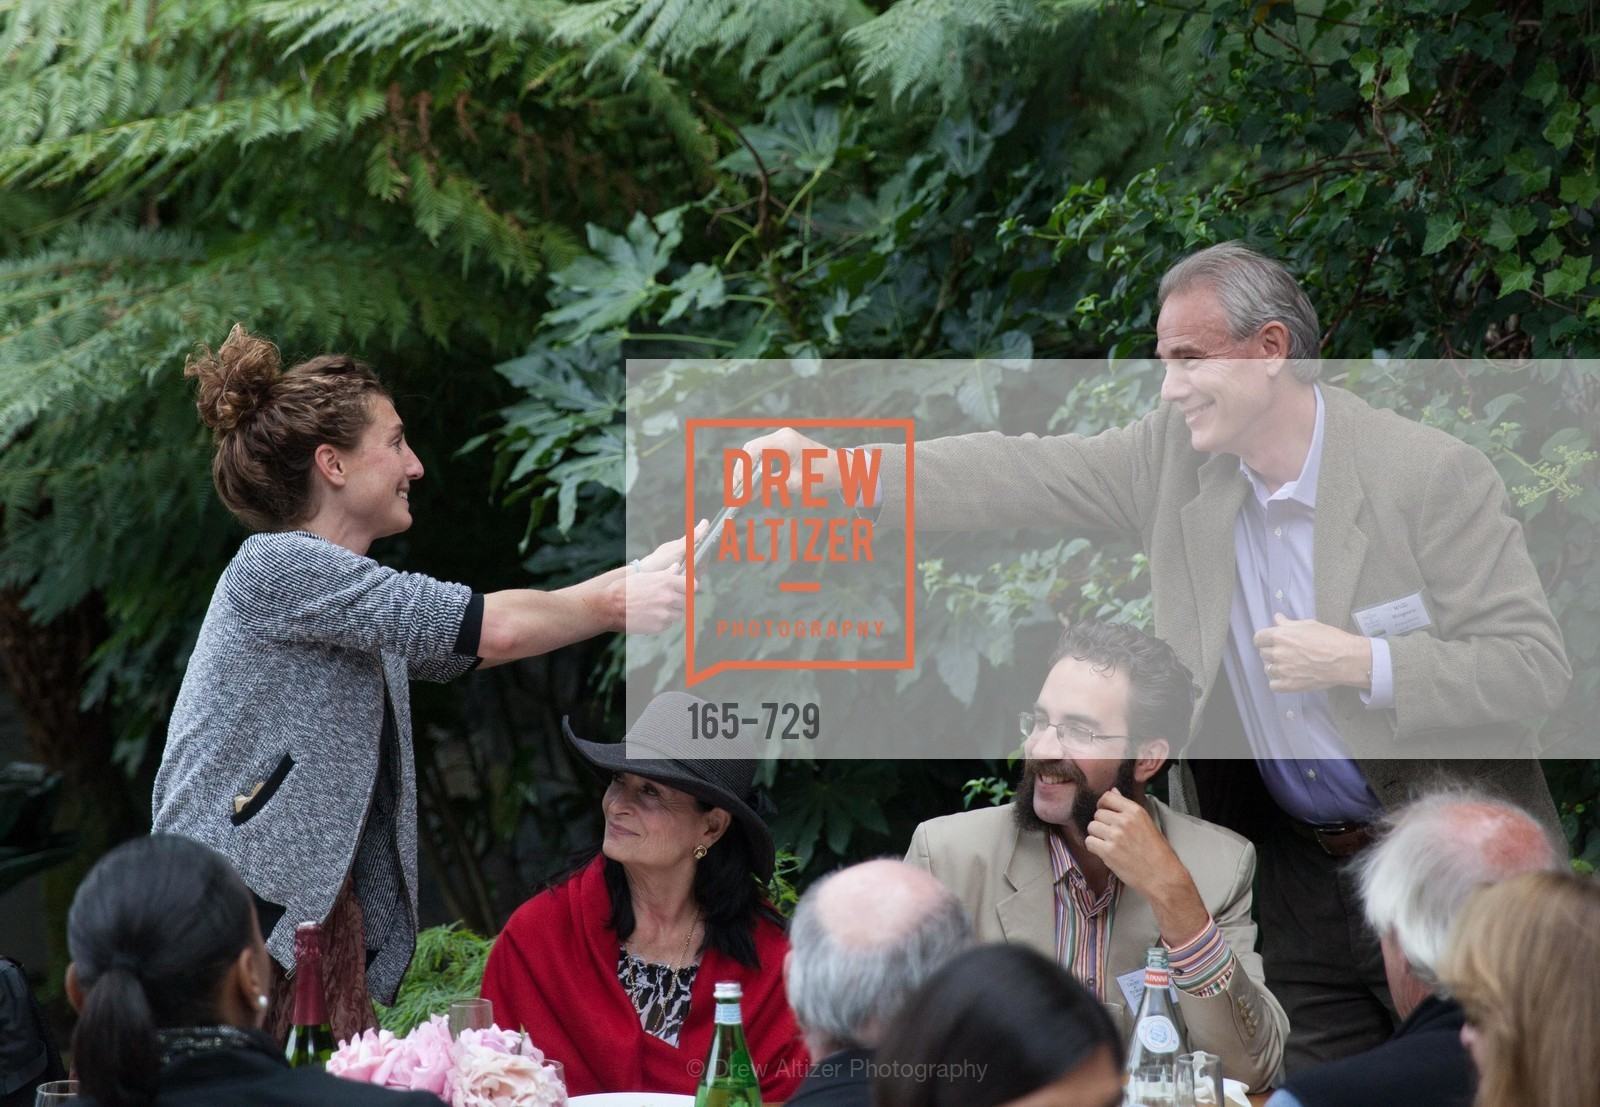 Isabelle Drever, Will Rogers, THE TRUST FOR PUBLIC LAND Luncheon Hosted by THE DREVER FAMILY FOUNDATION, US, May 15th, 2015,Drew Altizer, Drew Altizer Photography, full-service agency, private events, San Francisco photographer, photographer california